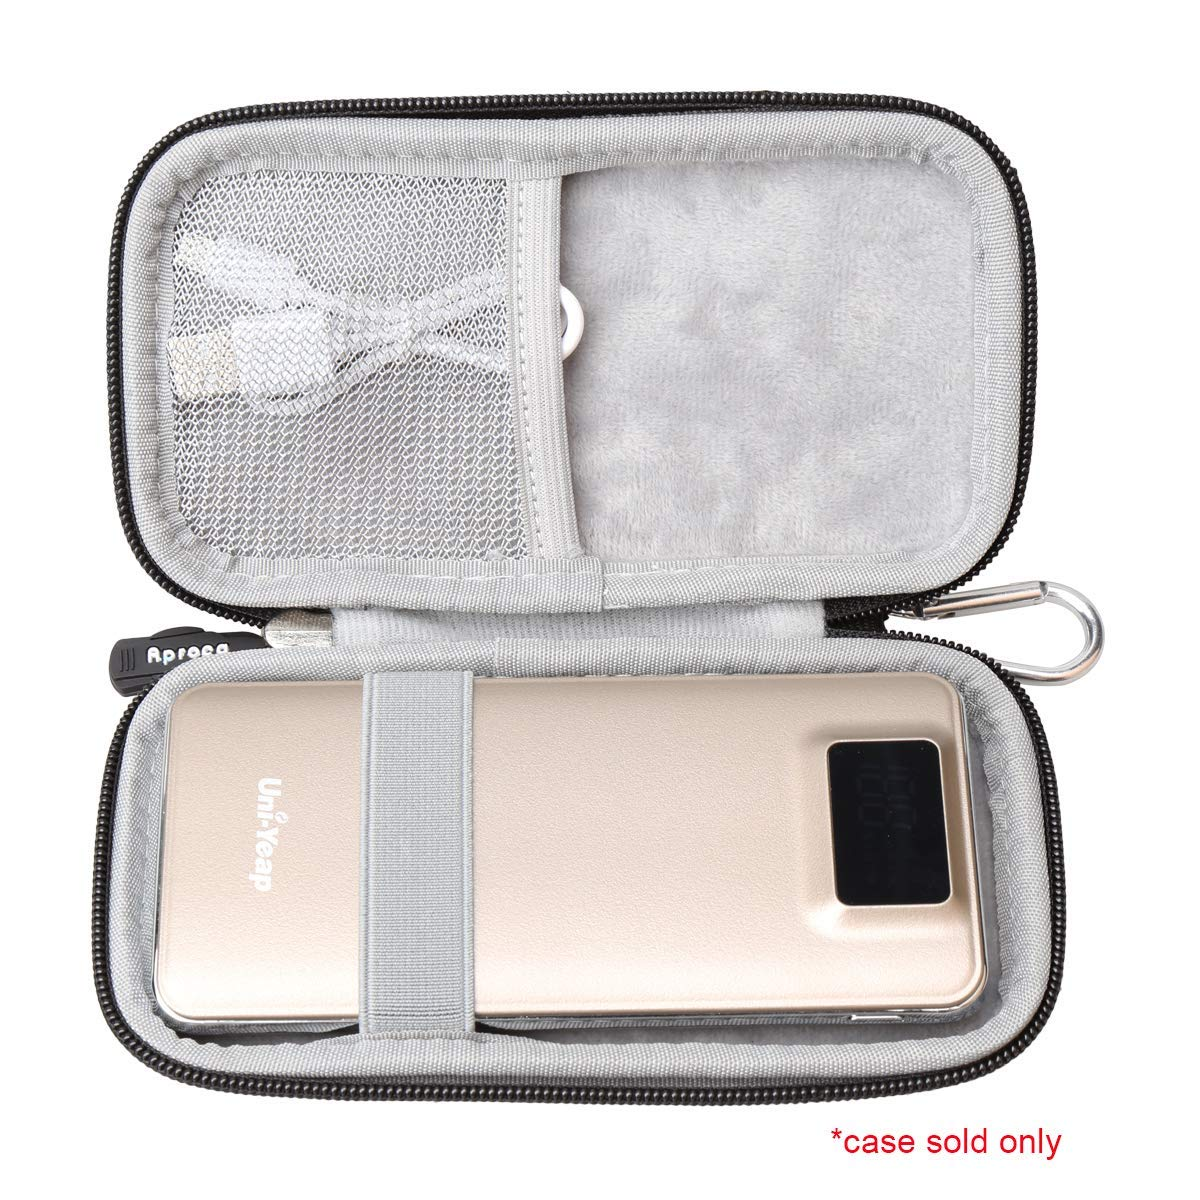 Uni-Yeap 11000mAh External Battery Charger Power Bank Hard Travel Carrying Case Aproca